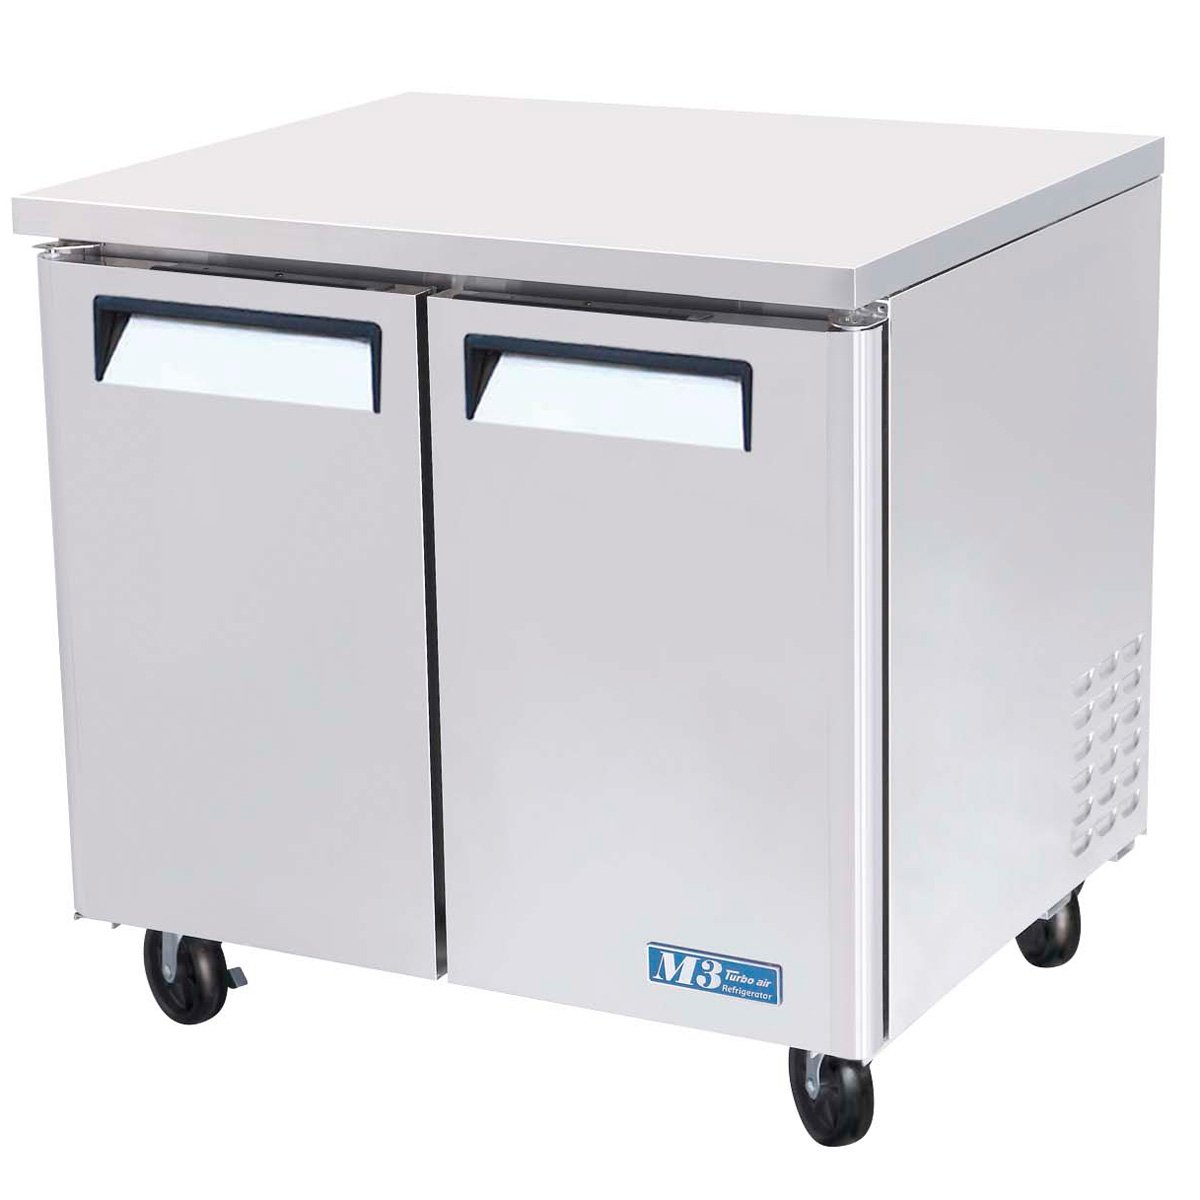 MUR36 9.5 cu. ft. M3 Series Undercounter Refrigerator with Efficient Refrigeration System Hot Gas Condensate System High Density PU Insulation and PE Coated Adjustable Shelves: Stainless Steel Turbo Air Inc